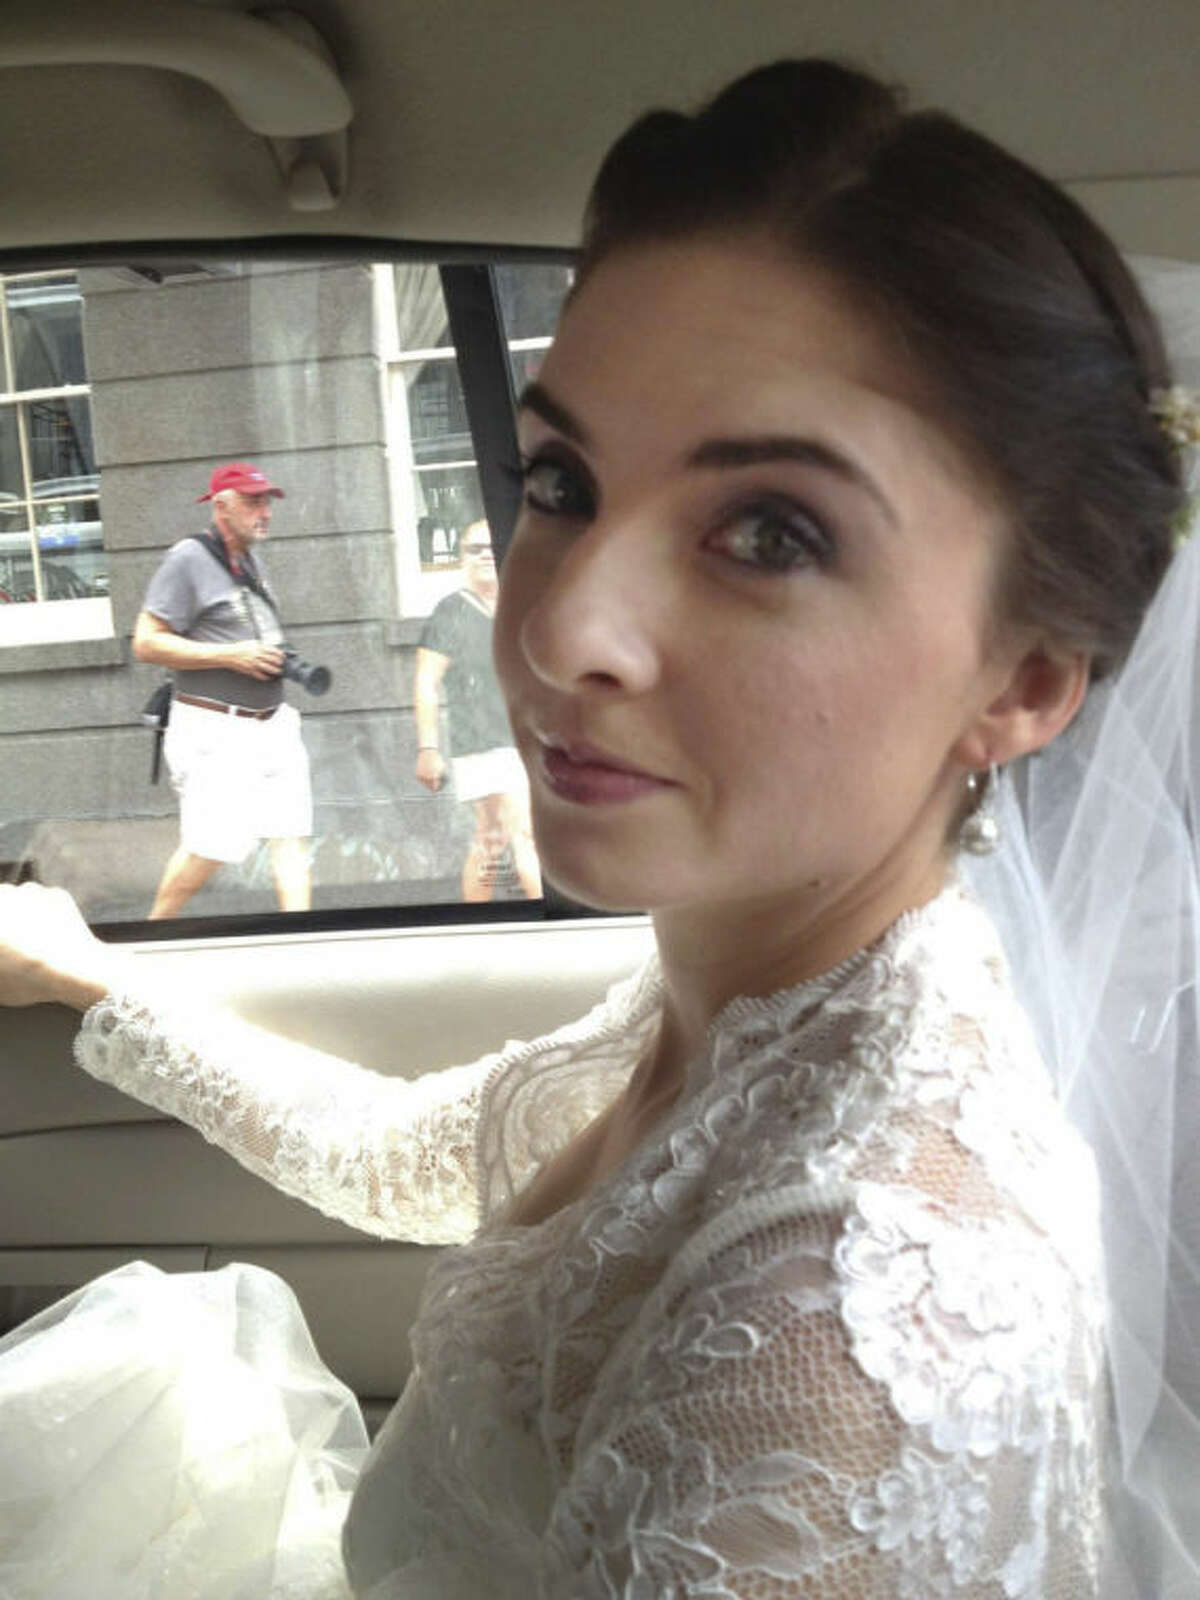 This Oct. 12, 2013 photo provided by Cheryl Winter shows her daughter, Shannon, riding in a taxi to her wedding in New Orleans, after her limousine failed to arrive. Cheryl Winter spent $500 for Hartford-based Travelers Insurance to cover Shannon?'s destination wedding, where her biggest concern was a potential hurricane. The weather cooperated, but after the limo failed to show, they used the insurance policy to claim the deposit money they could not get back from the driver. (AP Photo/Nora Peach)